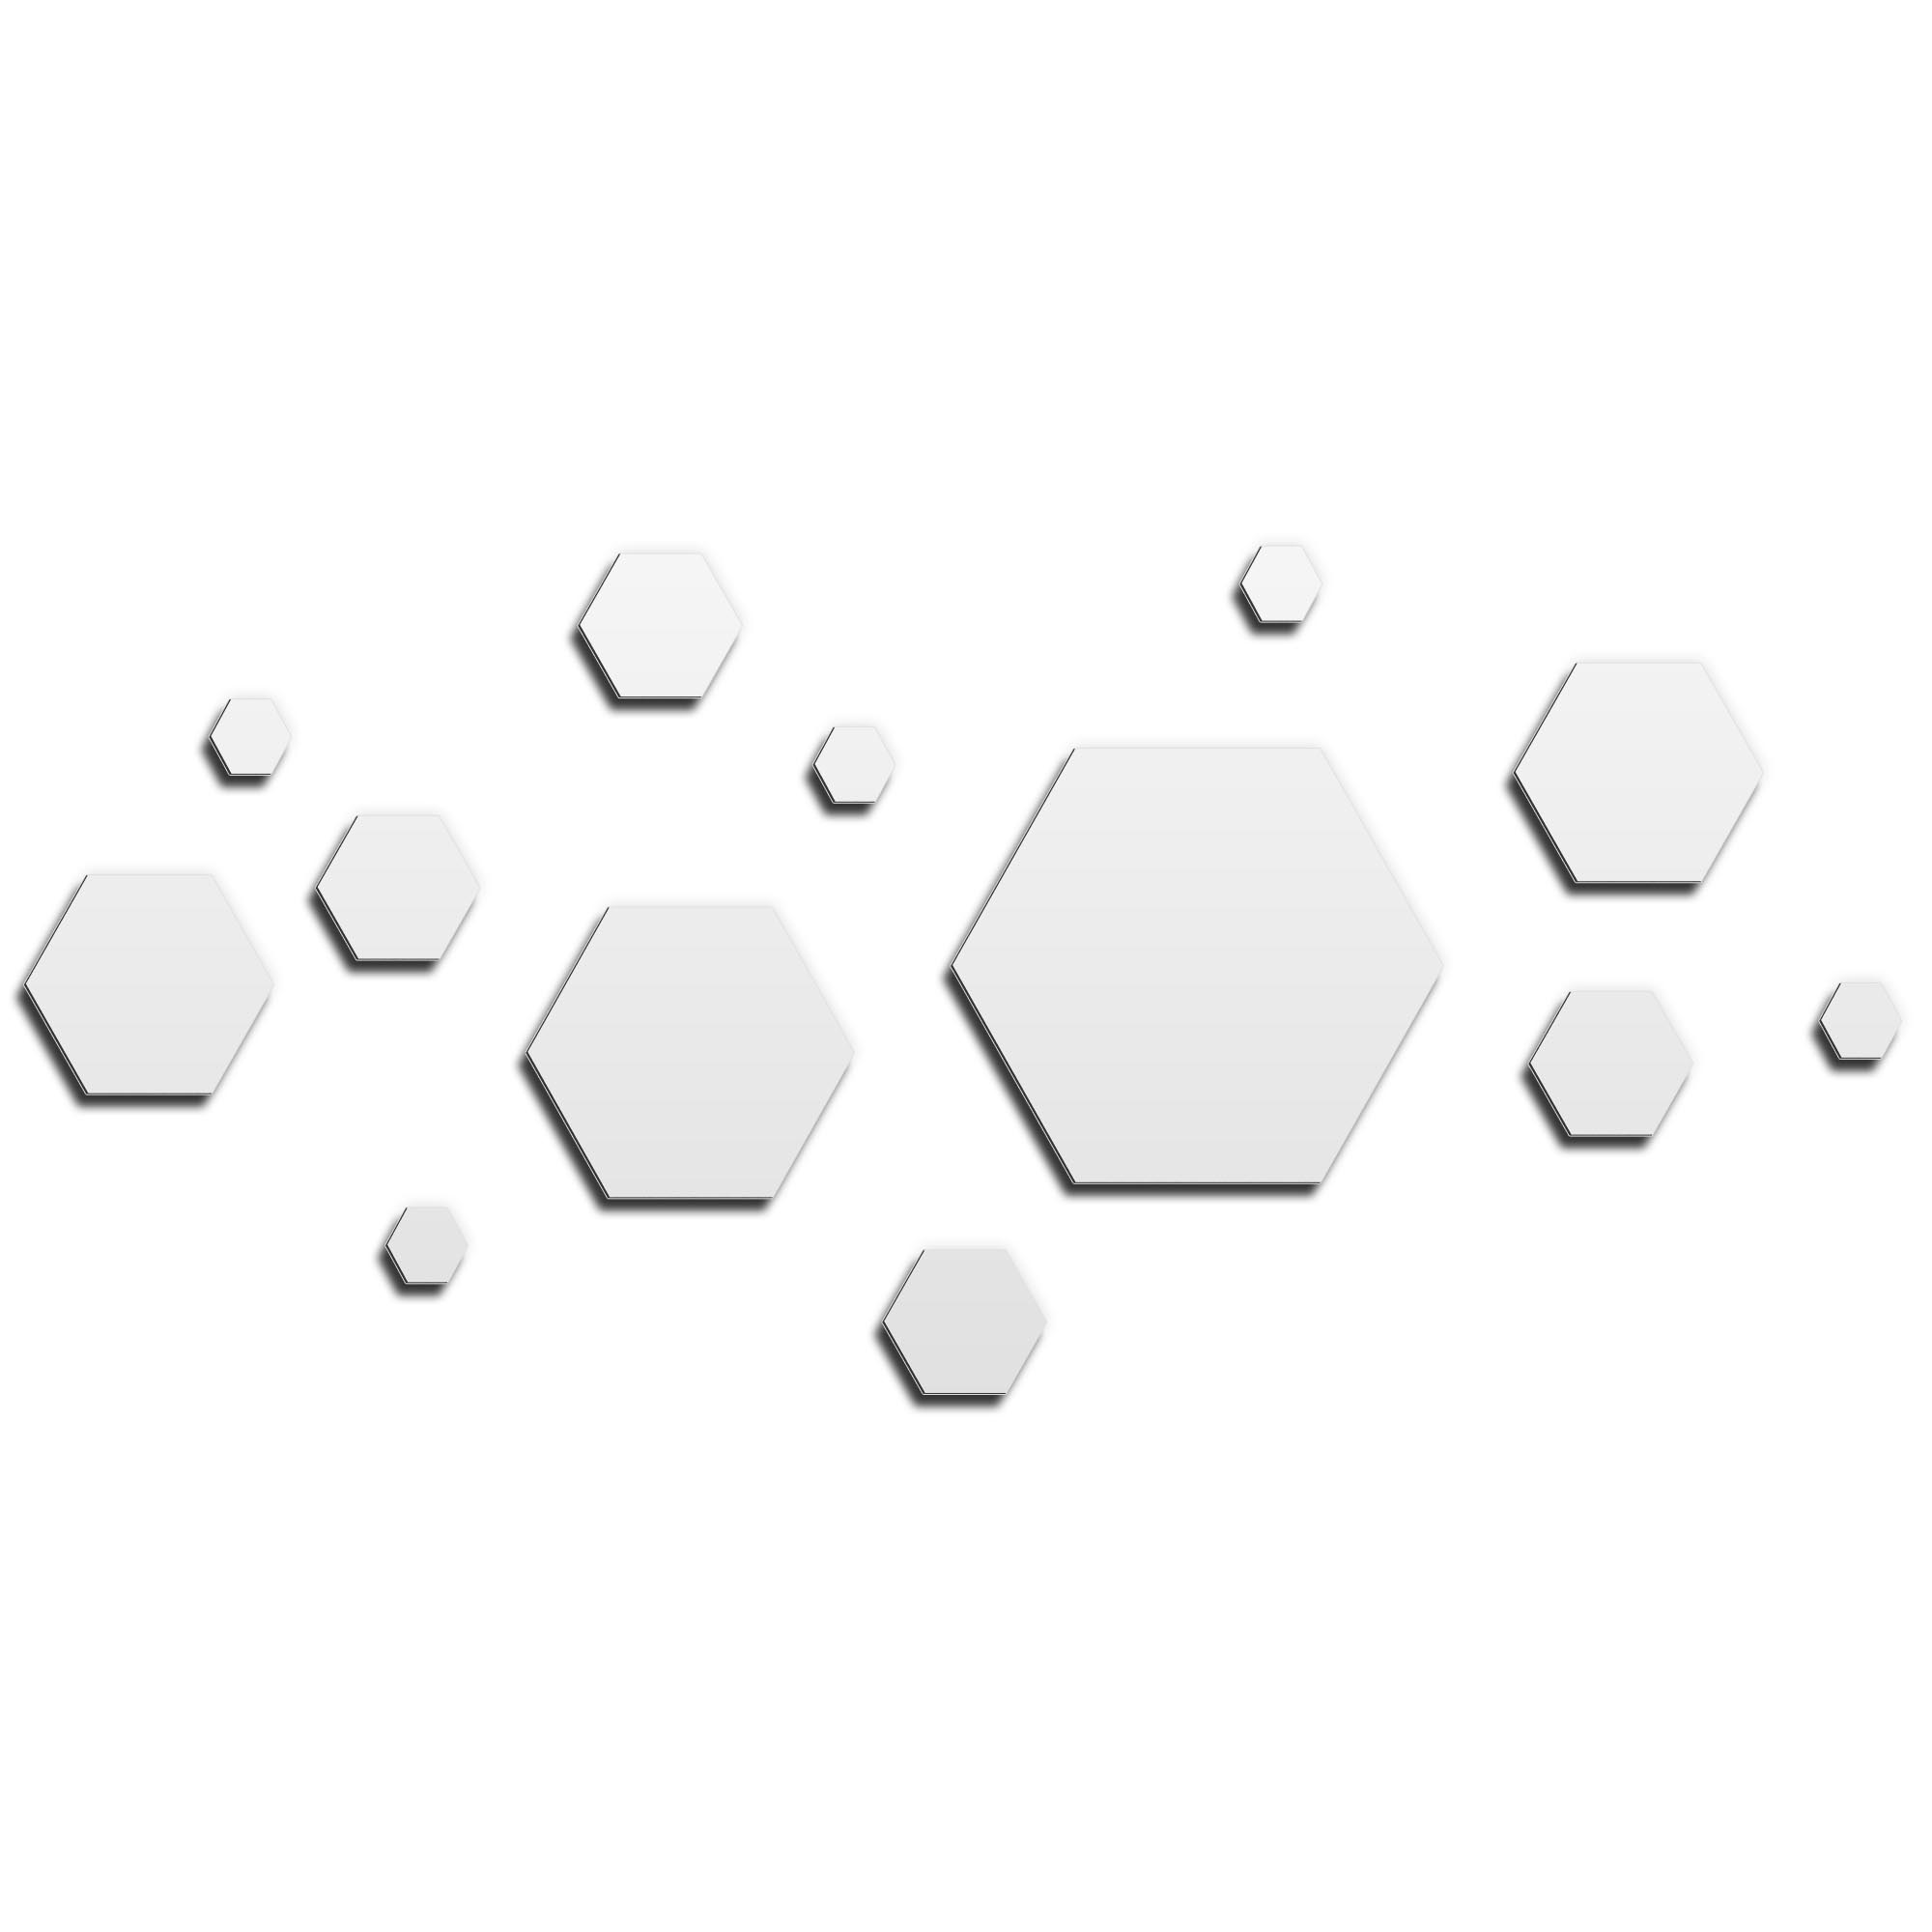 NAY 'Honeycomb White' 70in x 32in Hexagons Abstract Art on Aluminum Composite